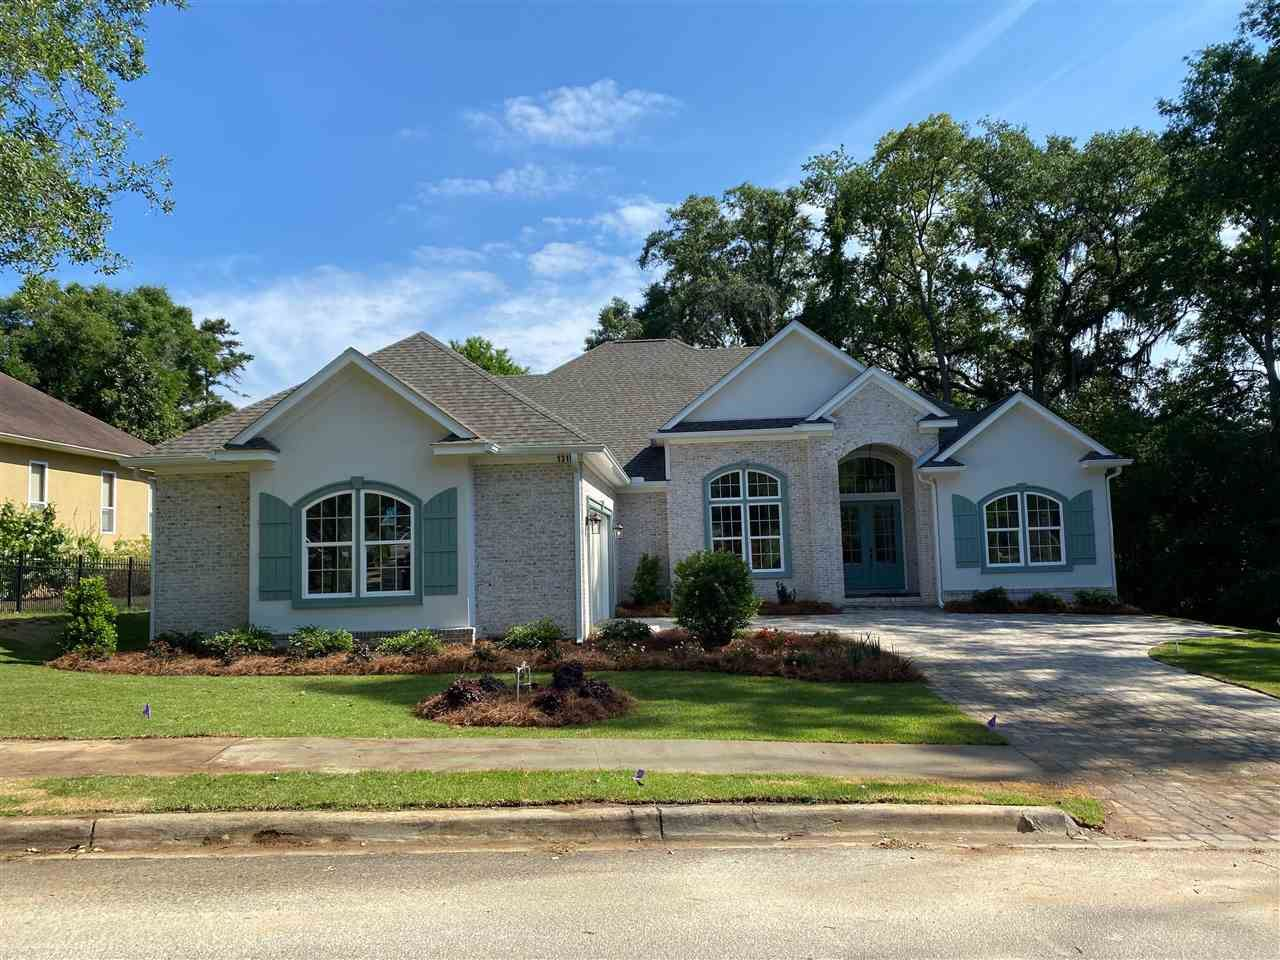 1310 Preakness Point, Tallahassee, FL 32308 - MLS#: 331848